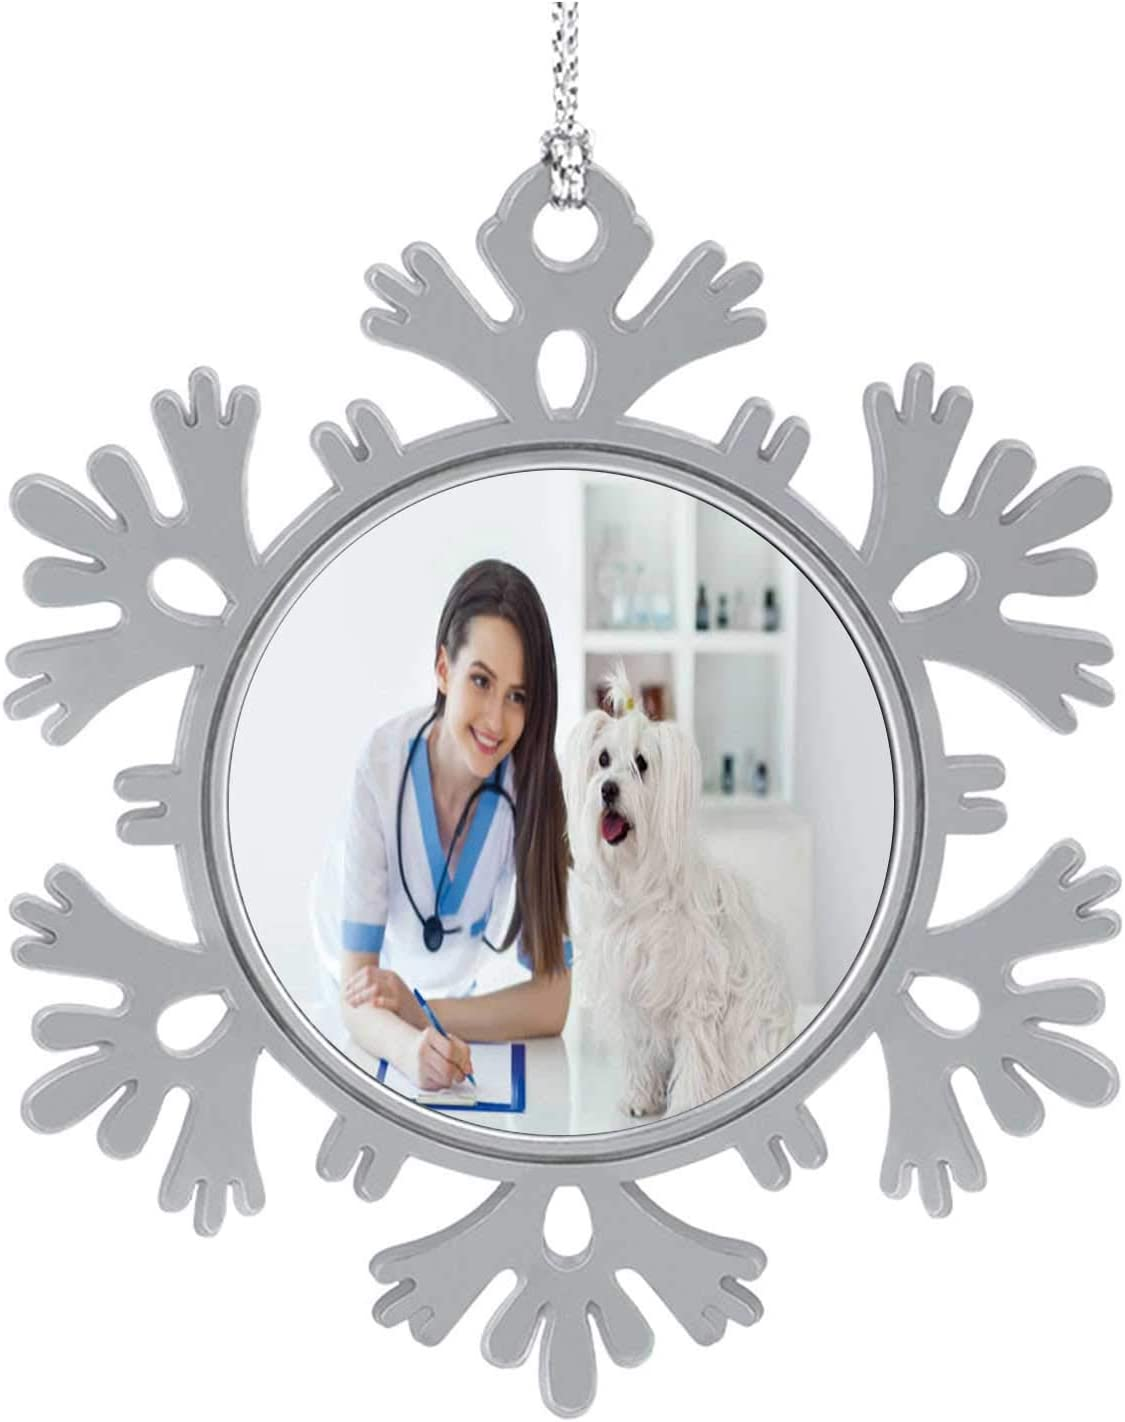 C COABALLA Happy White Dog and Beautiful Veterinarian Doctor in Vet Clinic Hospital,Cute 2020 Home Décor Hanging Snowflake Decorations Ornament 5PCS